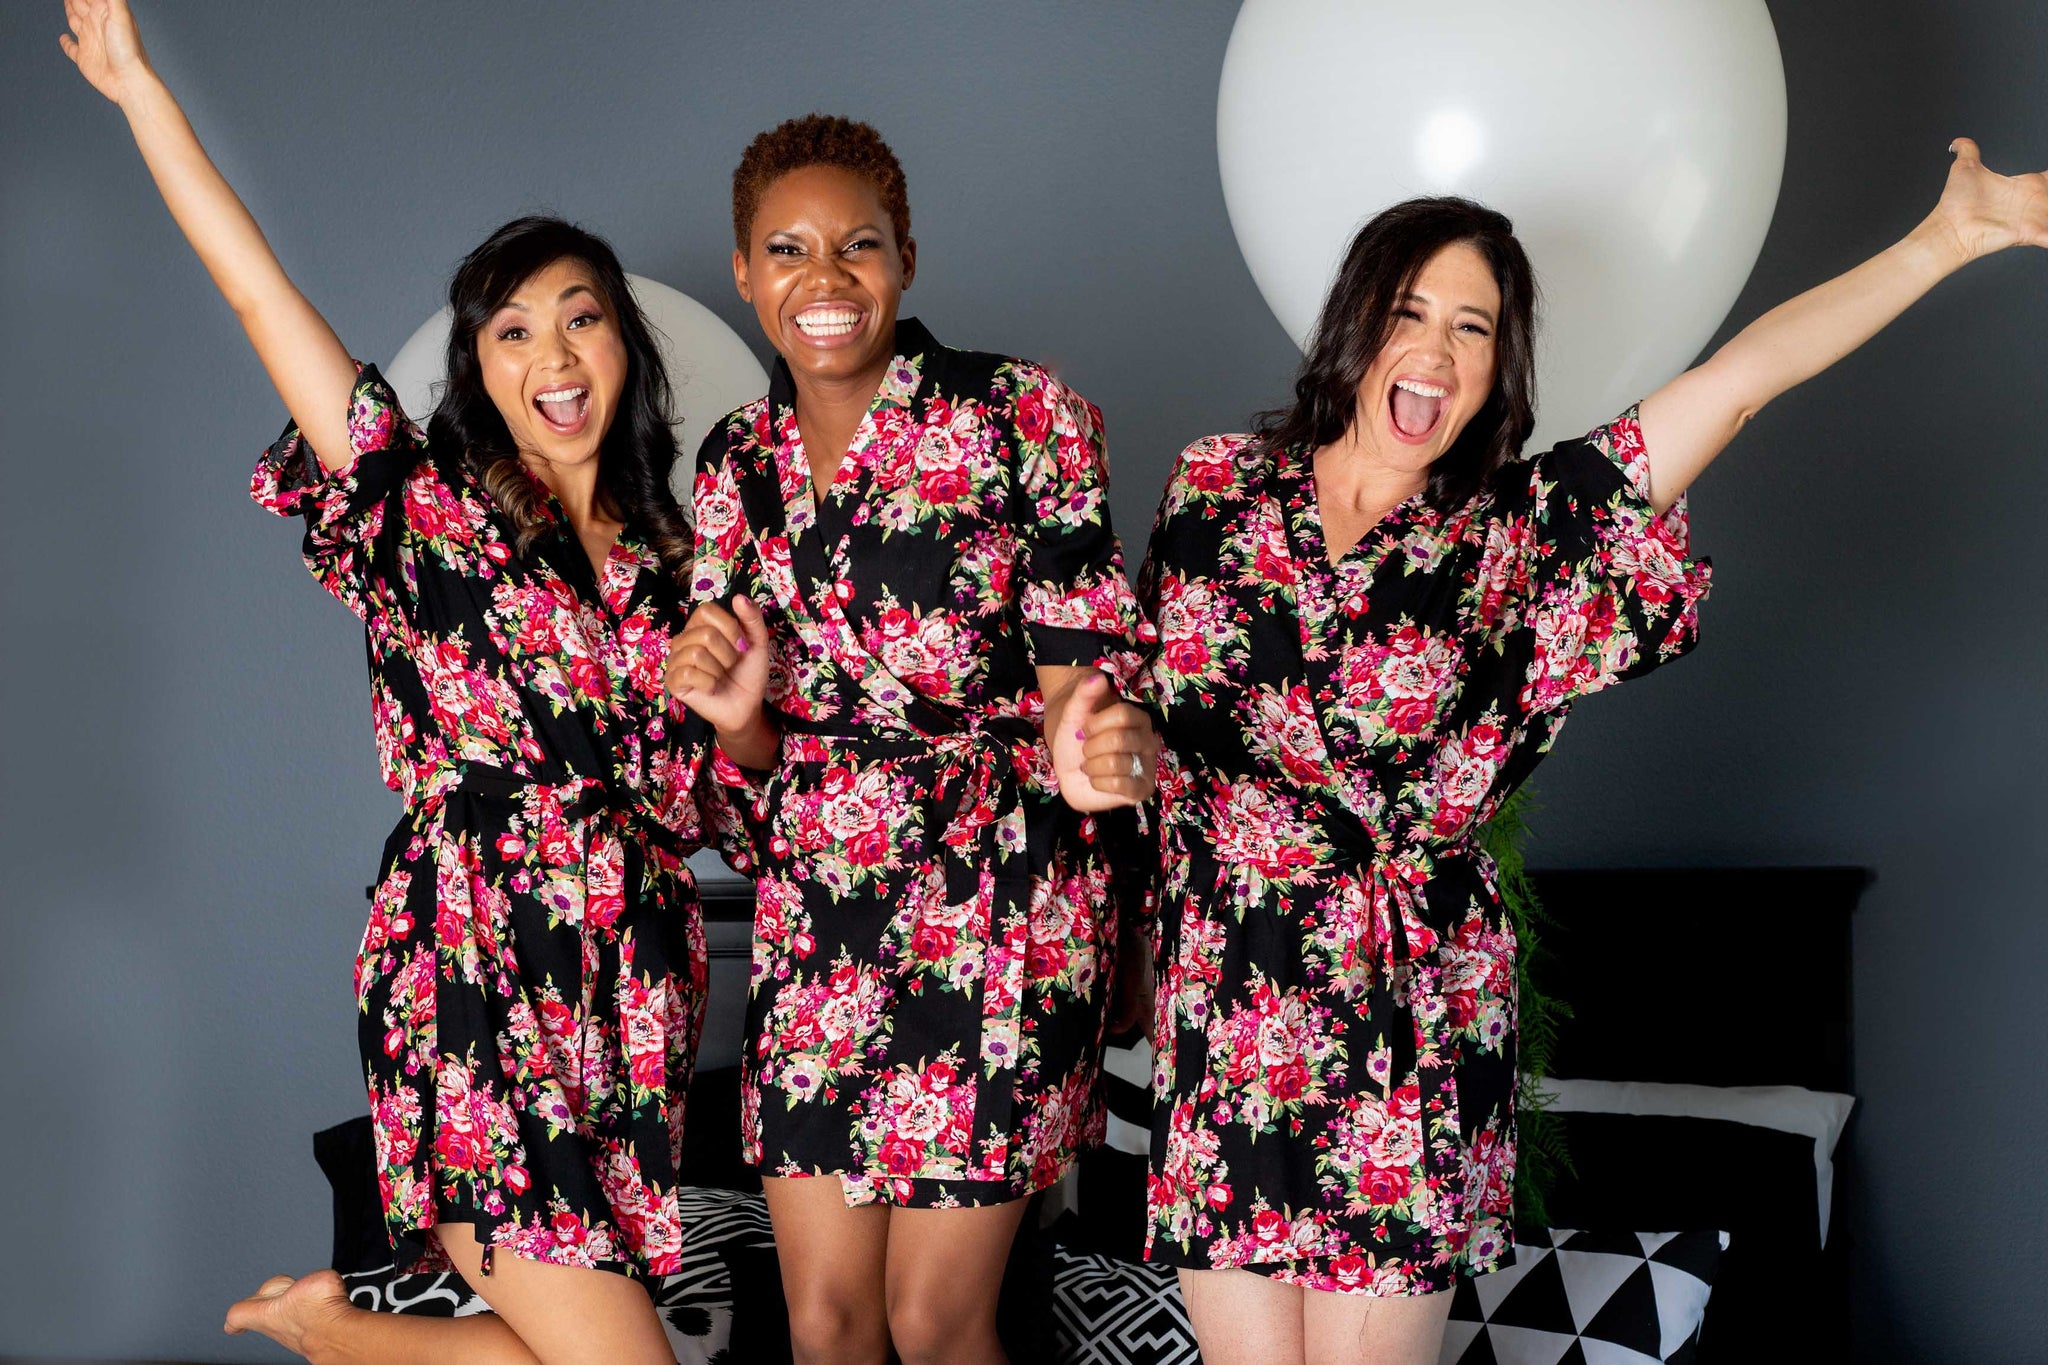 Black Floral Cotton Bridesmaid Robes For Your Bridesmaid Proposal Box